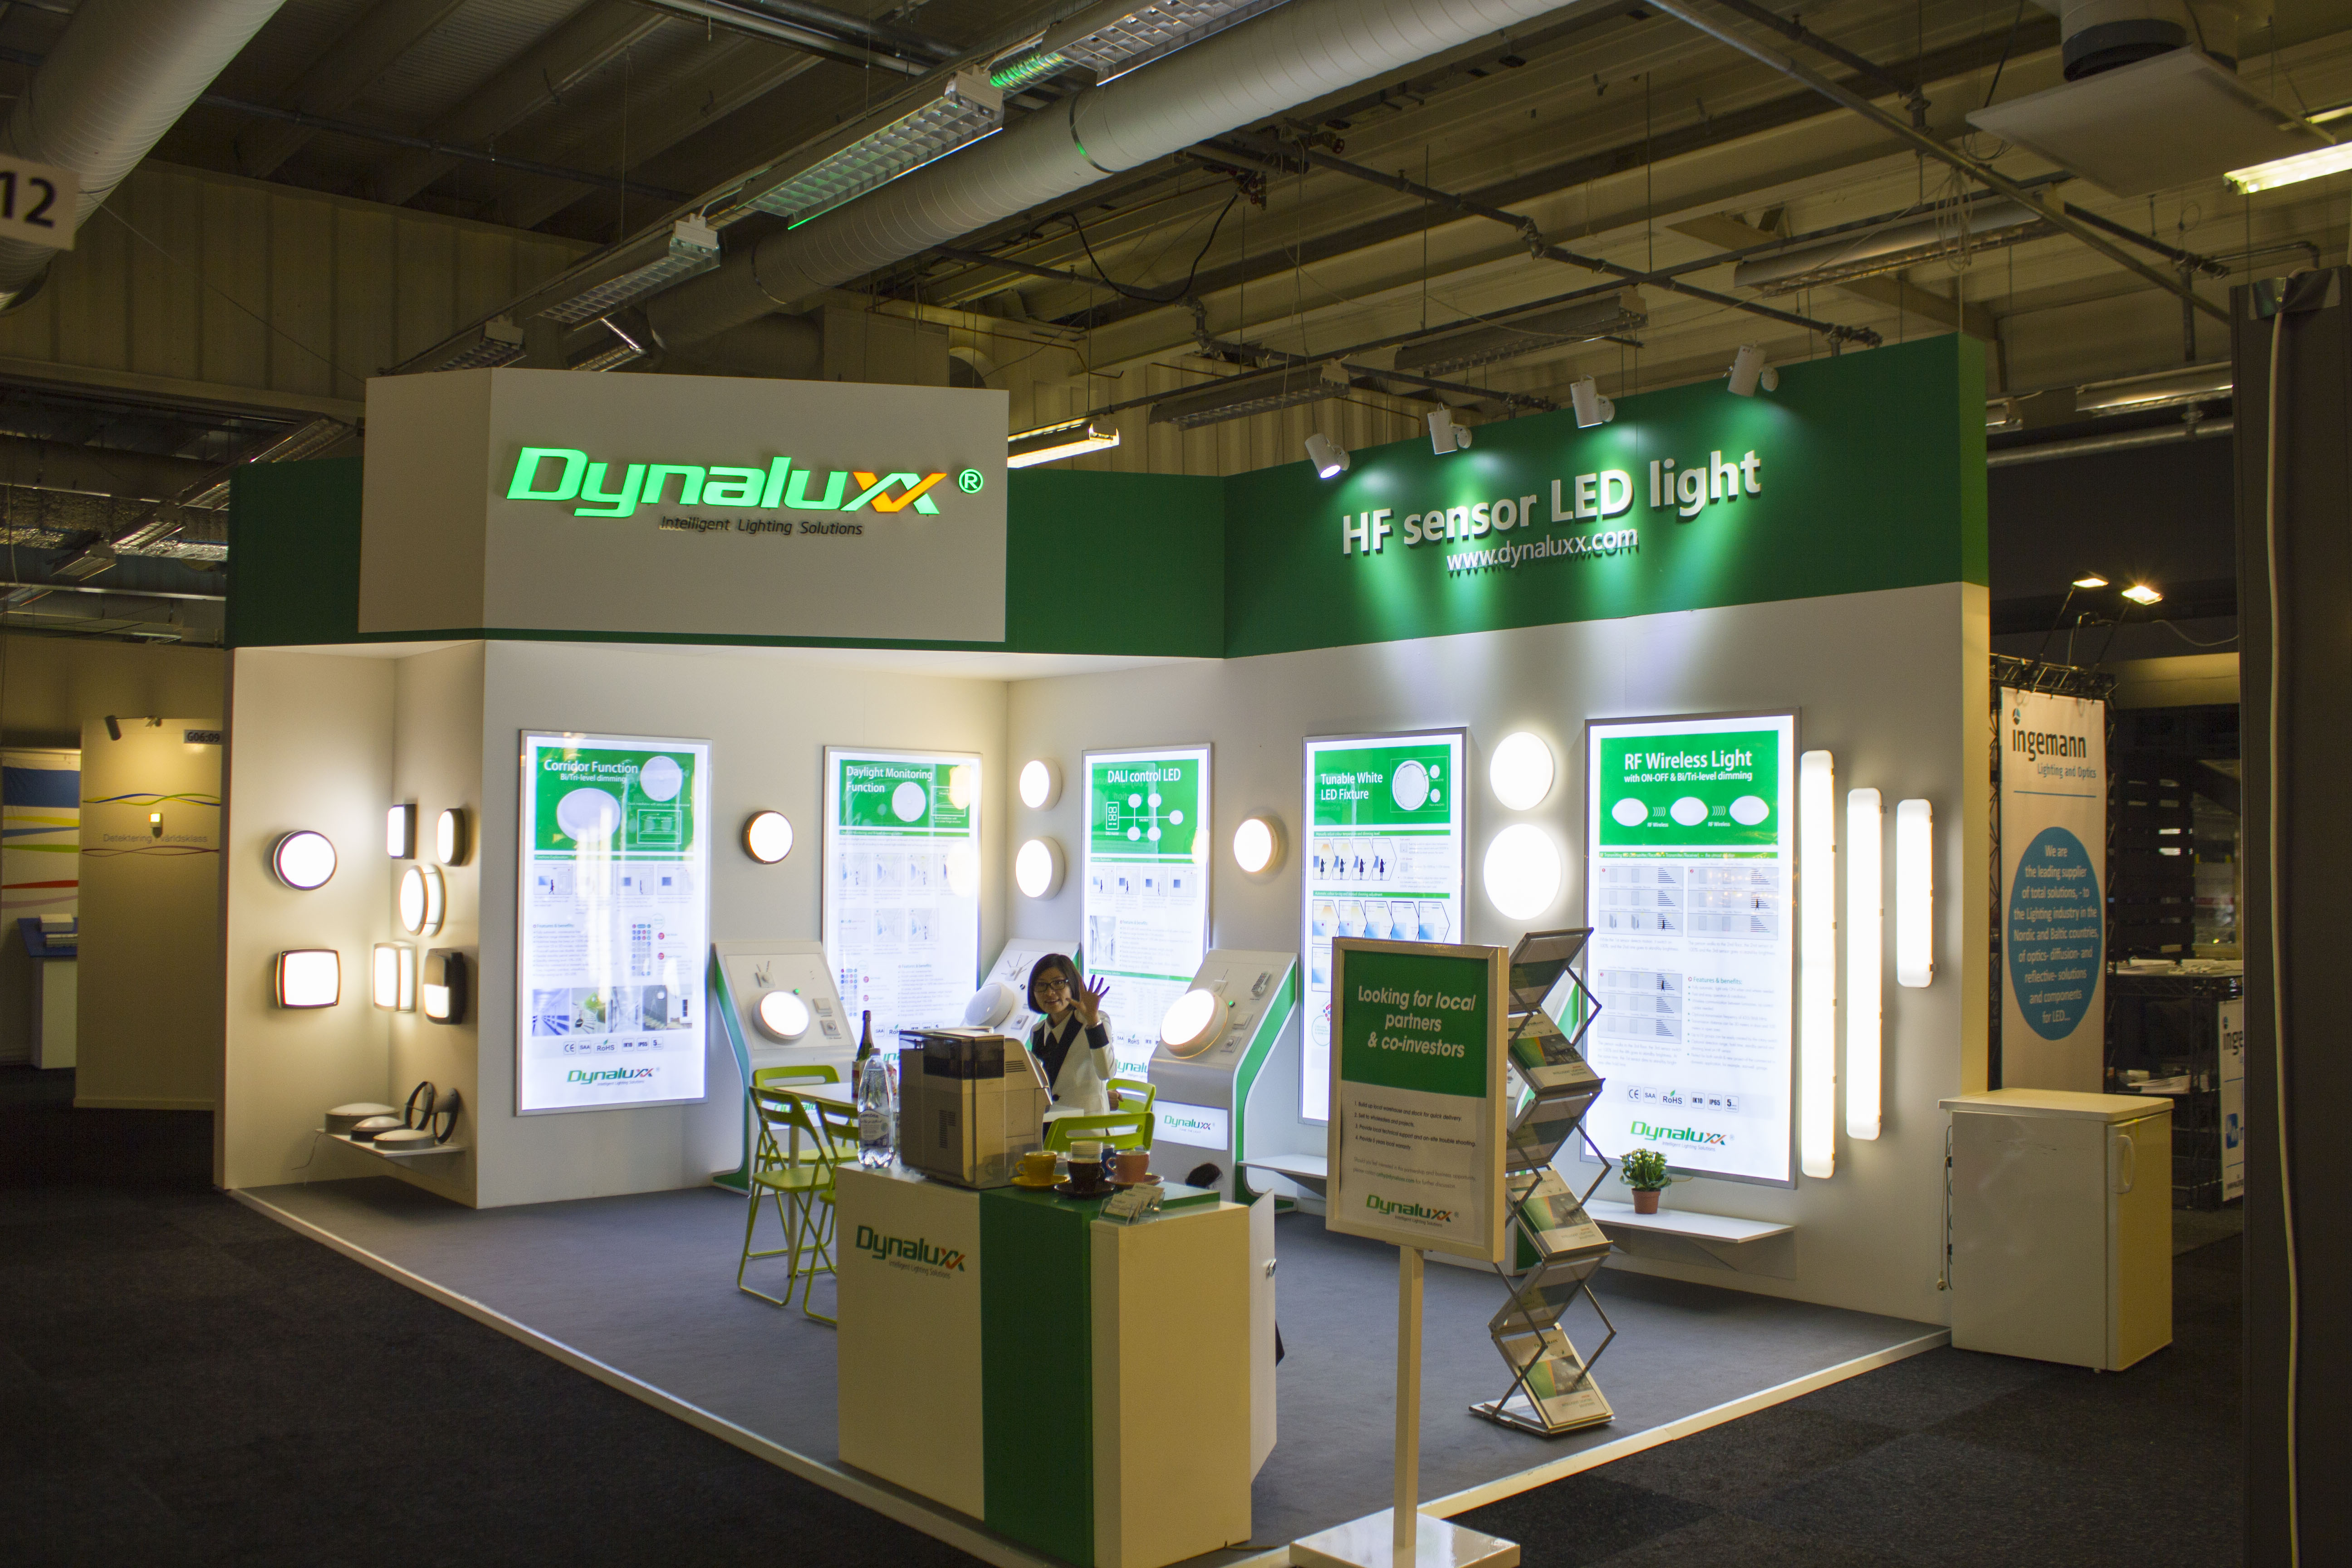 2015 Dynaluxx Fairs & Exhibition